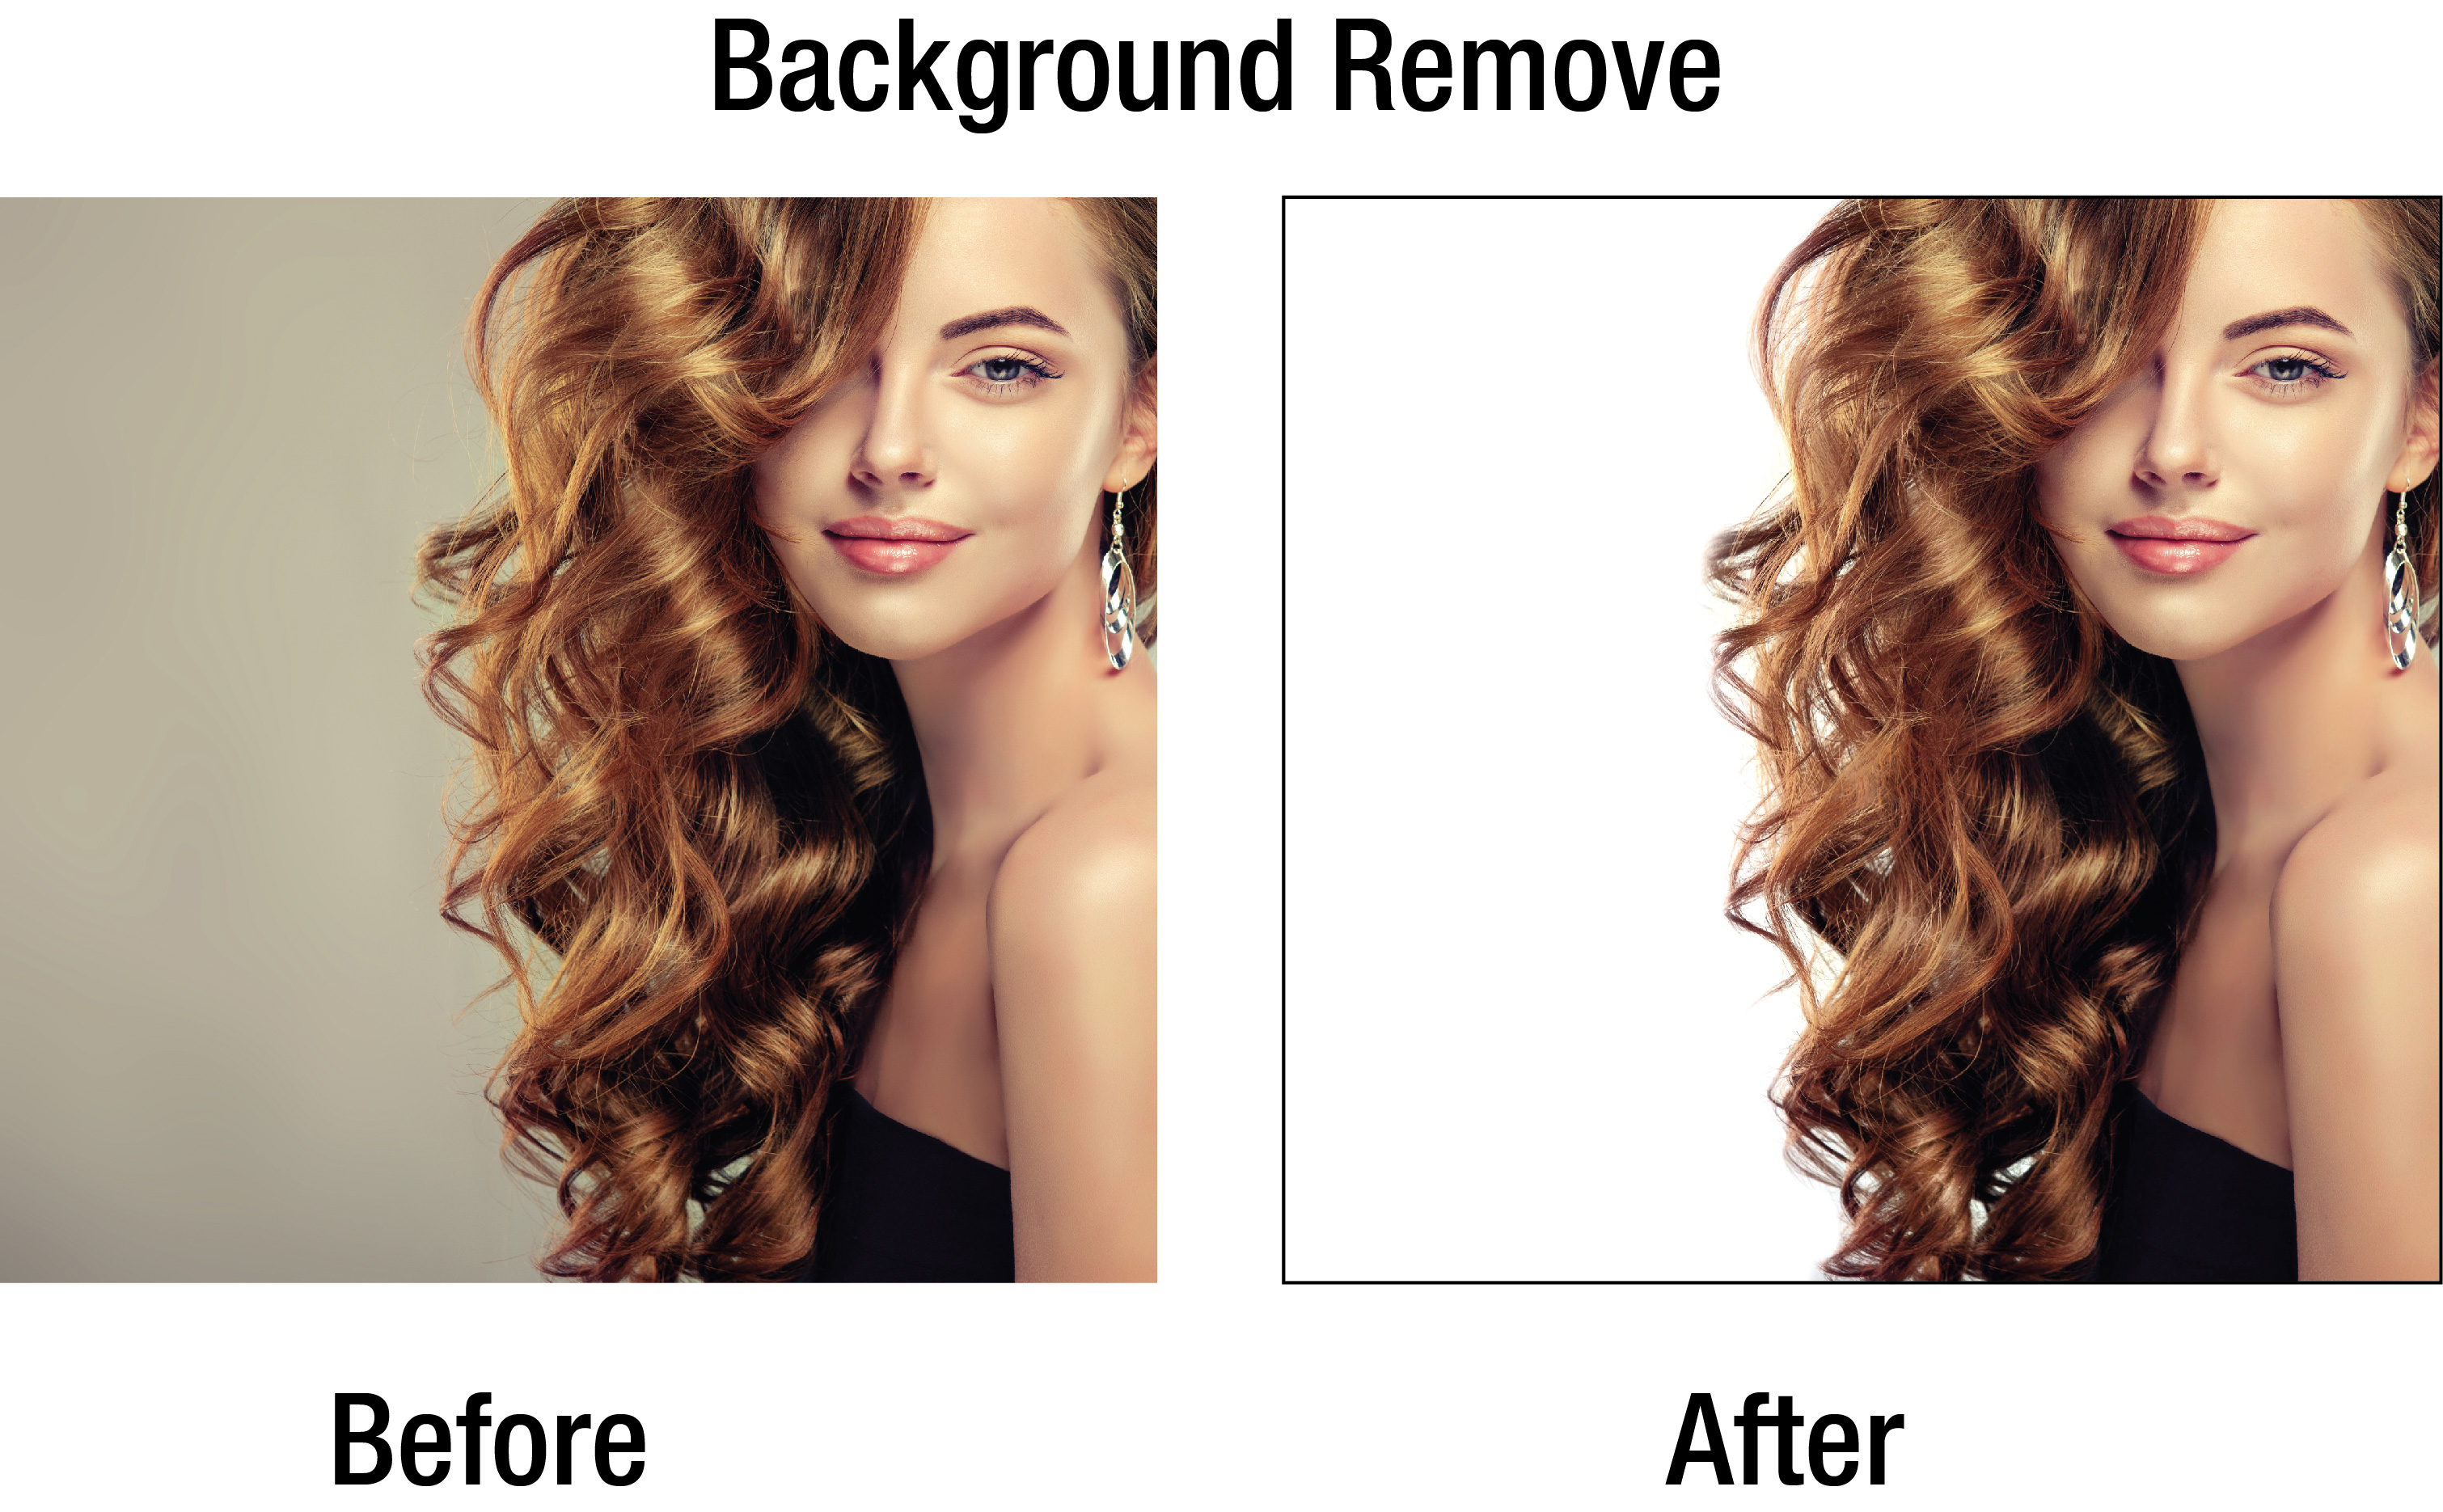 15 Product background romove in 1 day